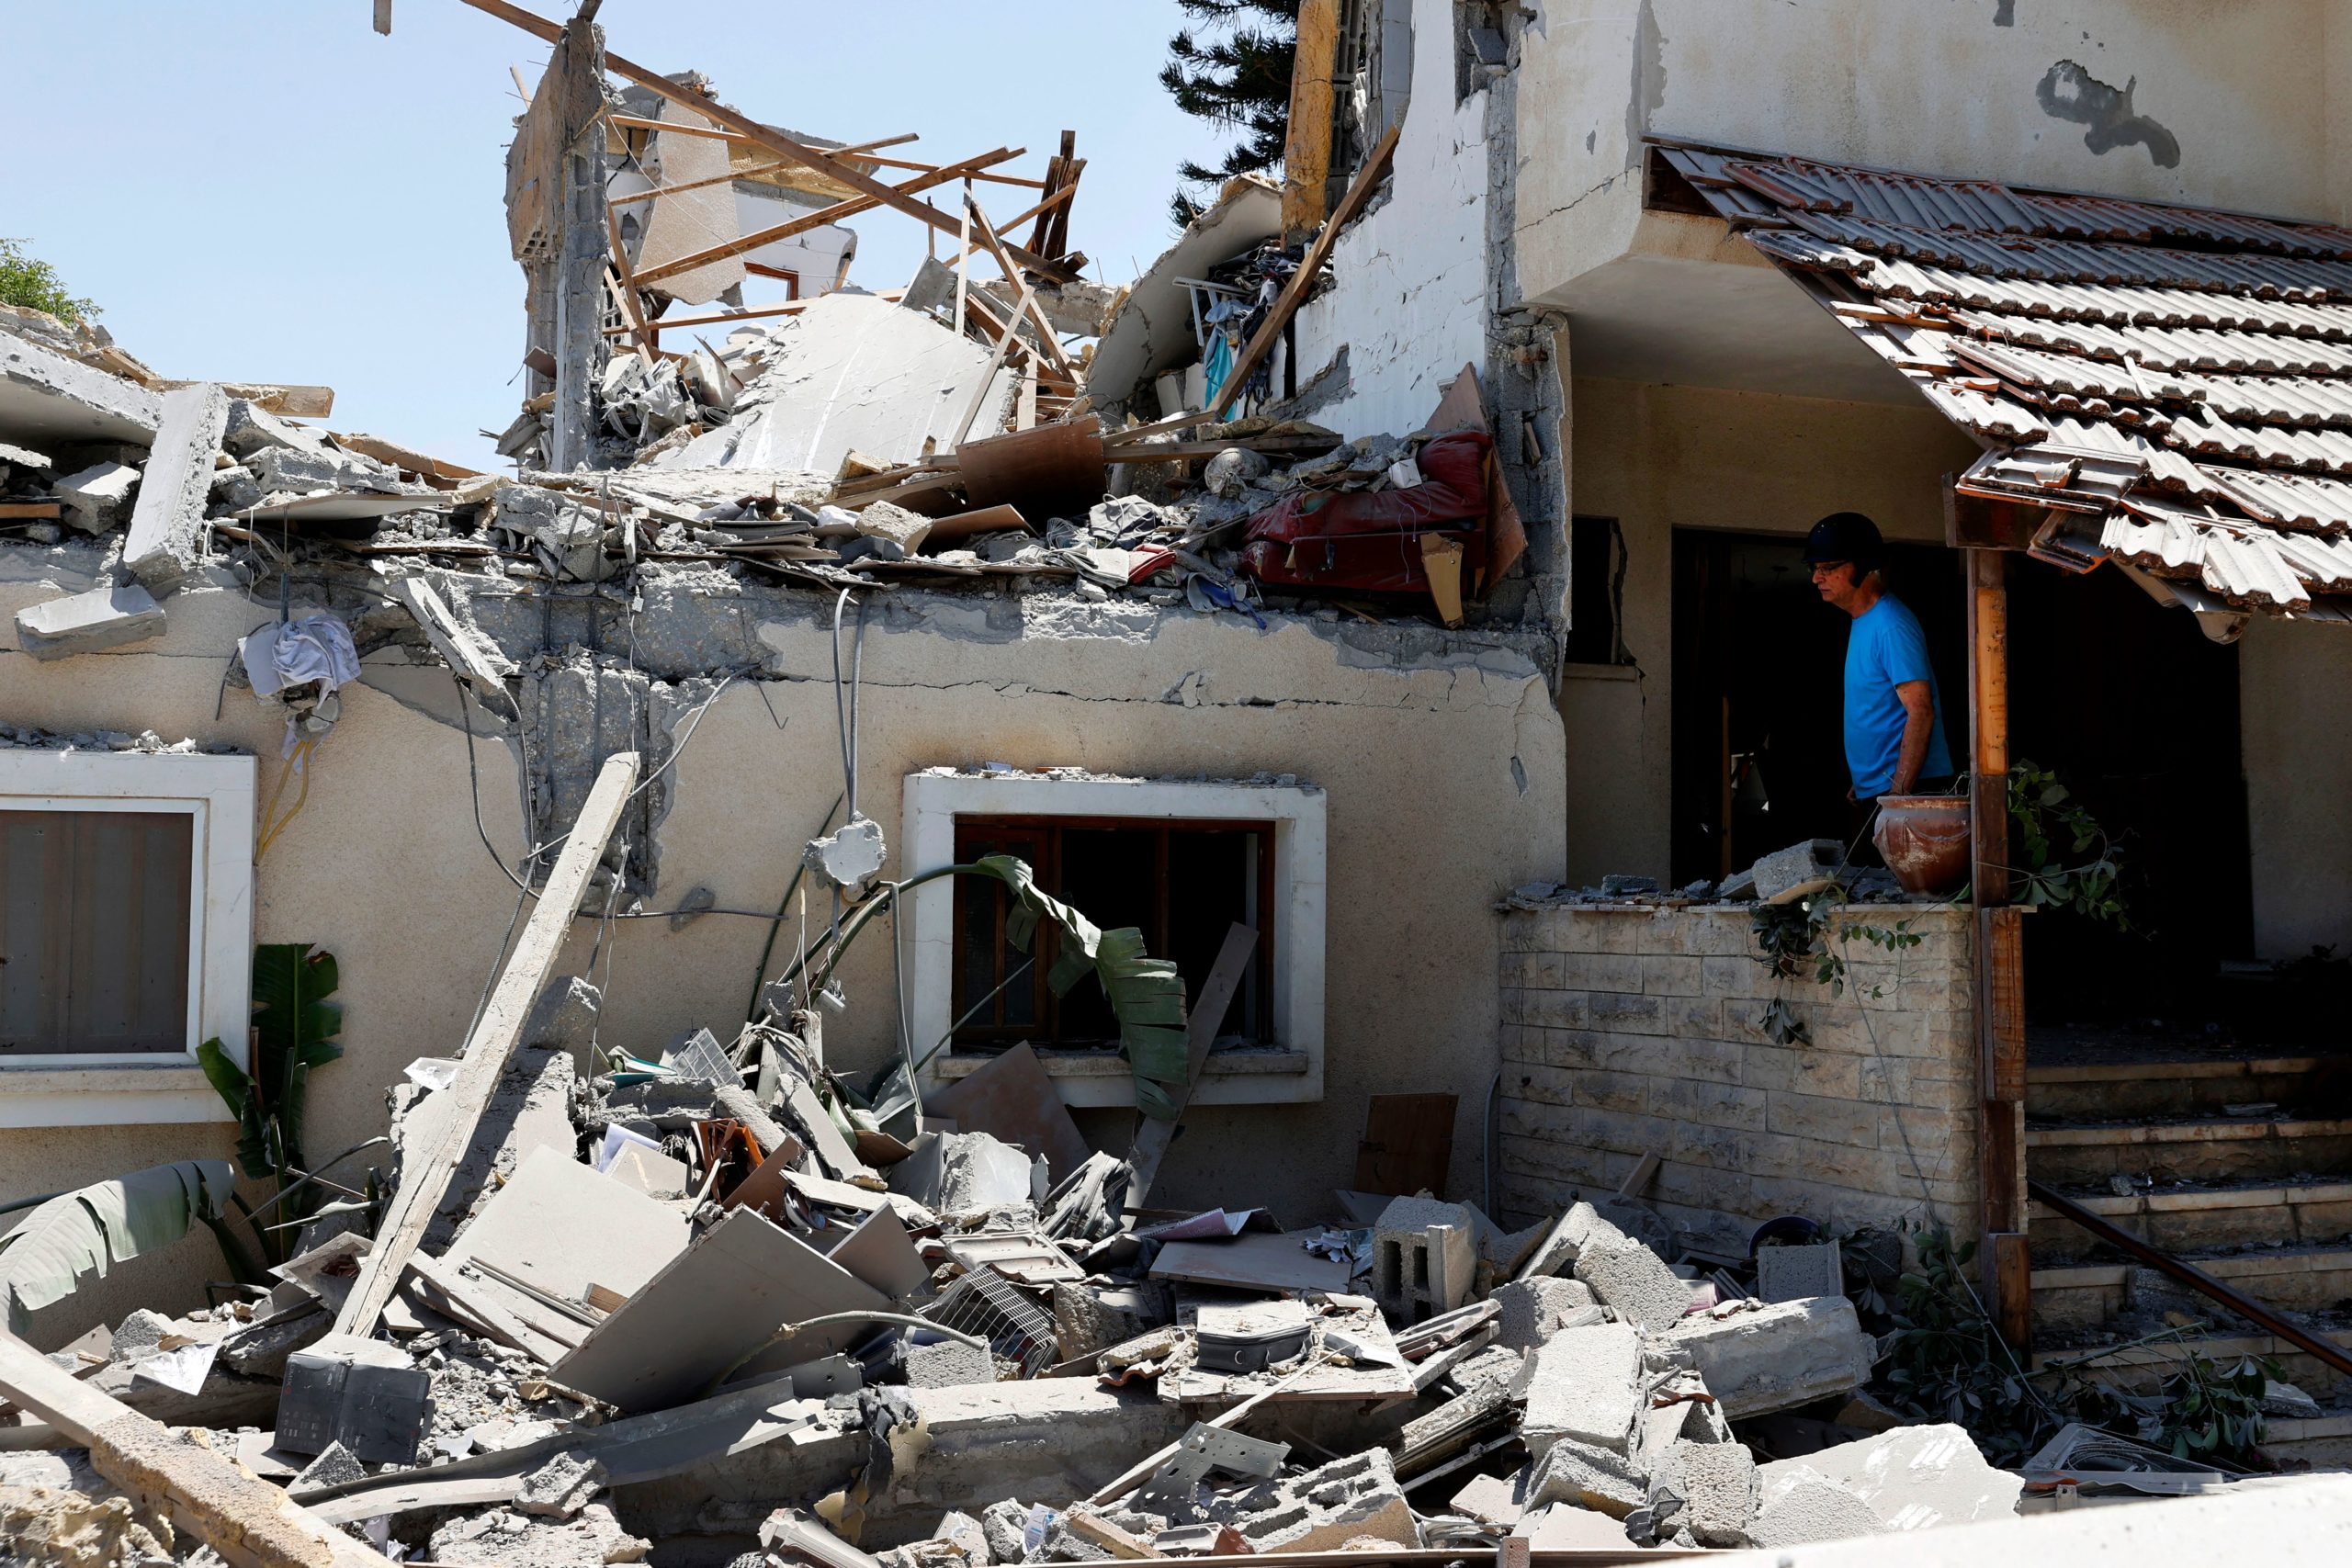 An Israeli citizen looks at the rubble caused by a rocket shot from Palestine by Hamas militants on Wednesday. (Jack Guez/AFP via Getty Images)